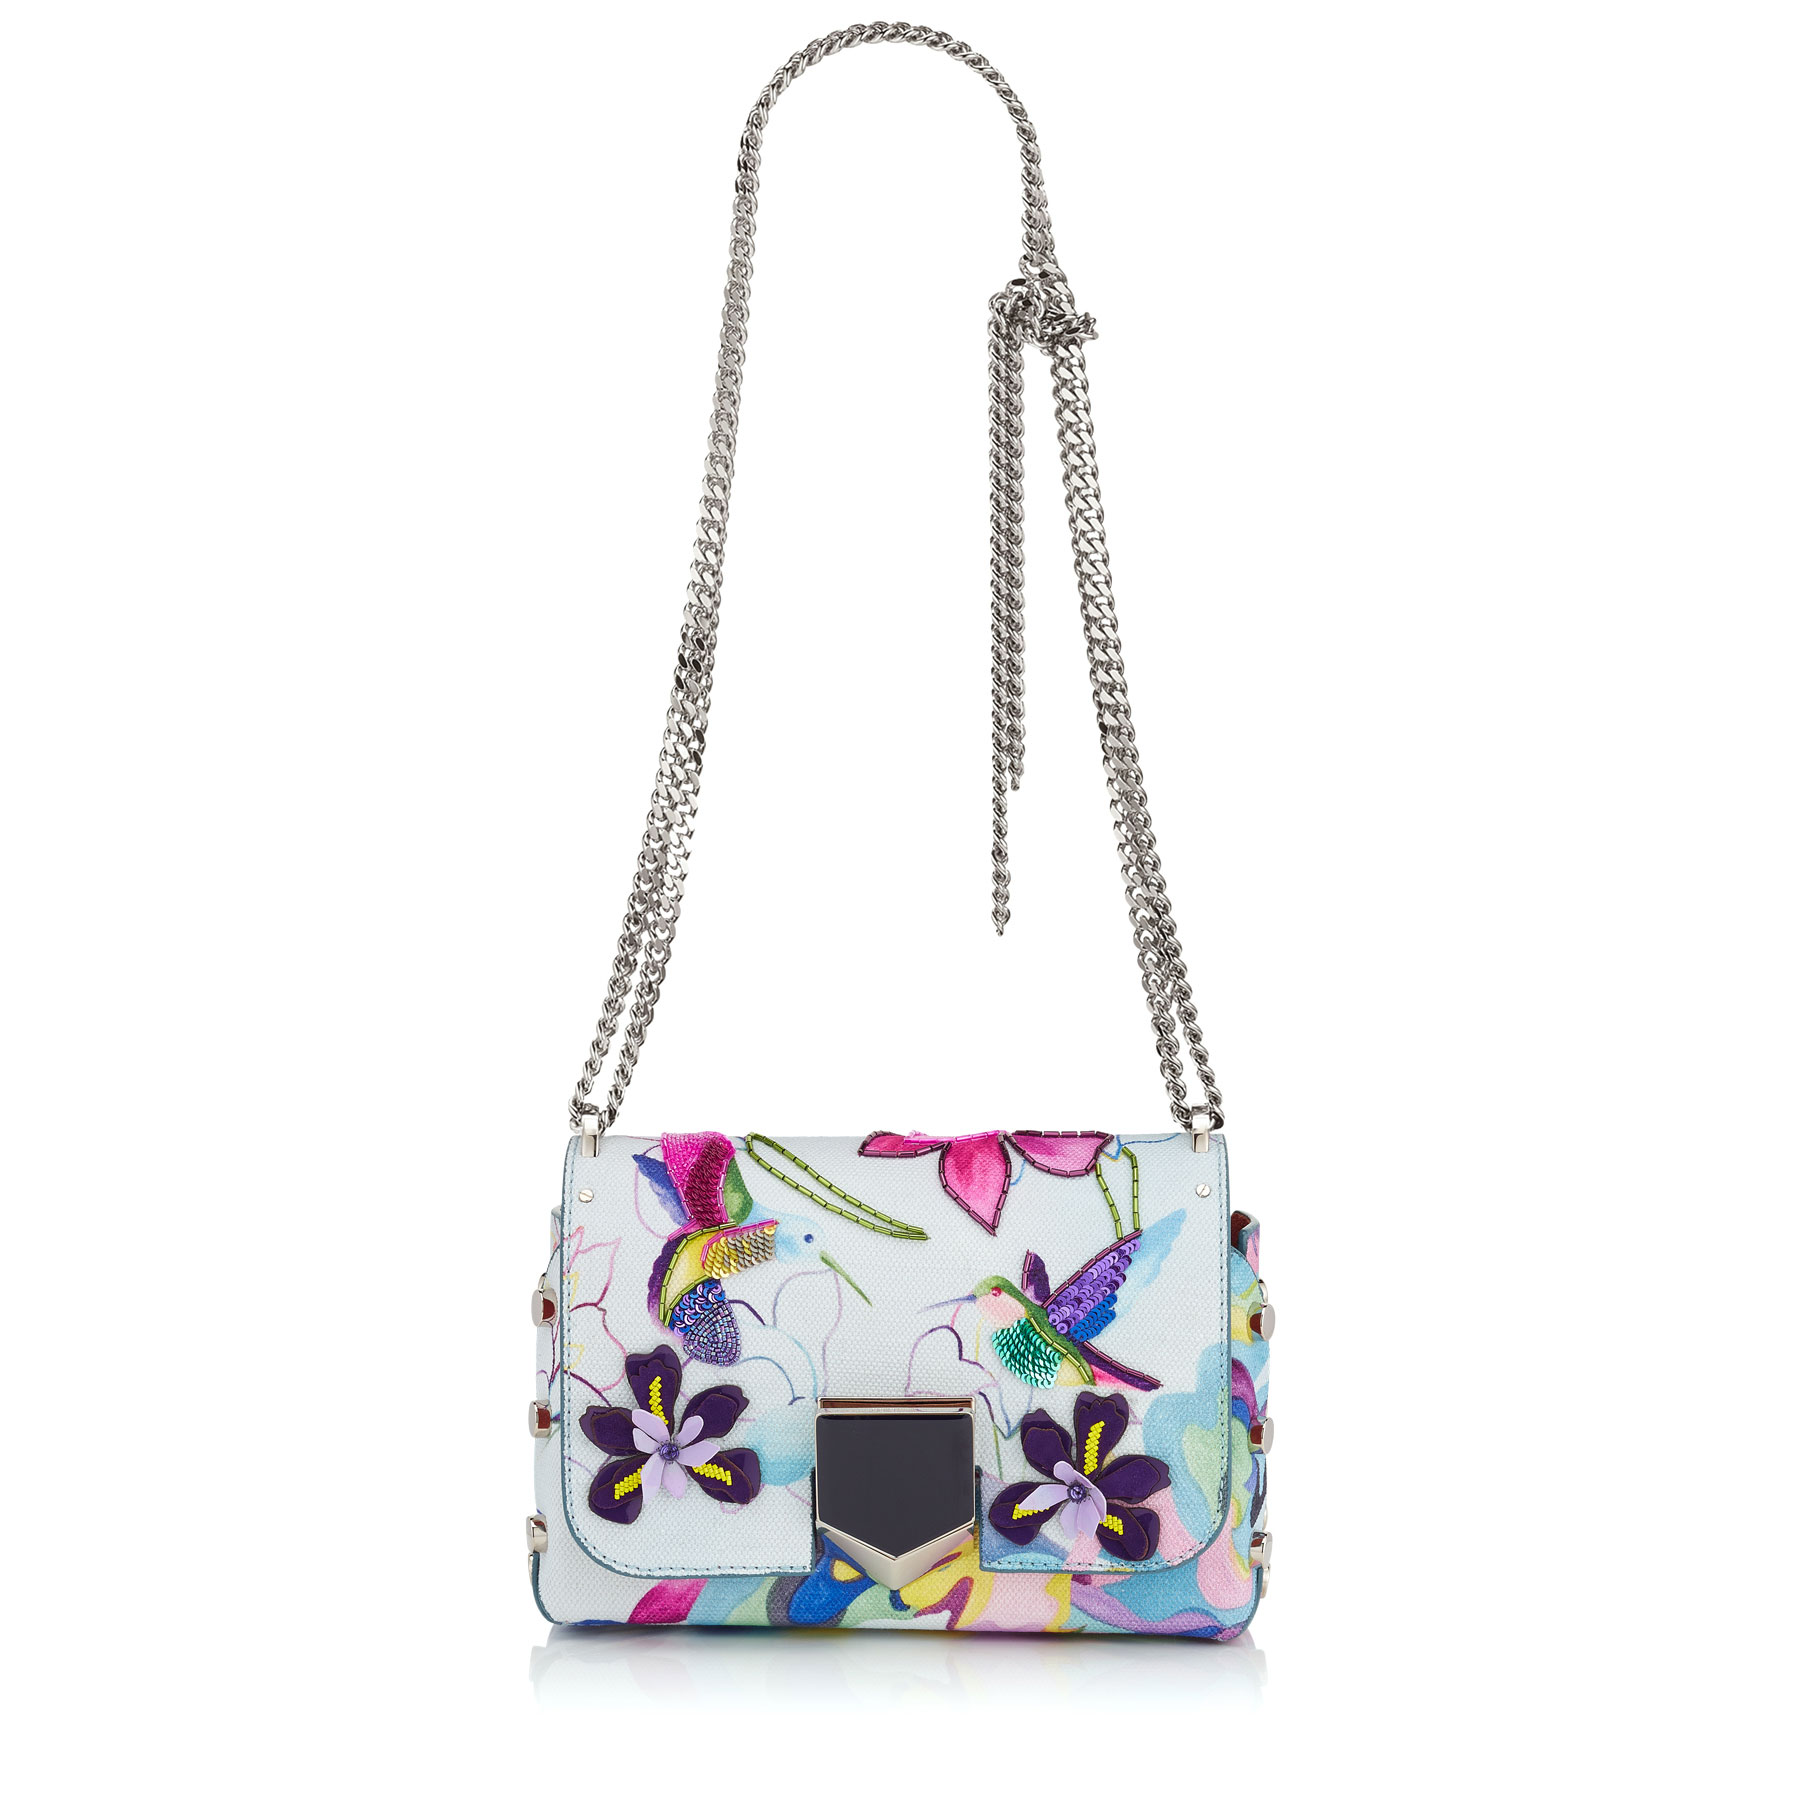 LOCKETT PETITE Hummingbird Printed Canvas with Embroidery Shoulder Bag